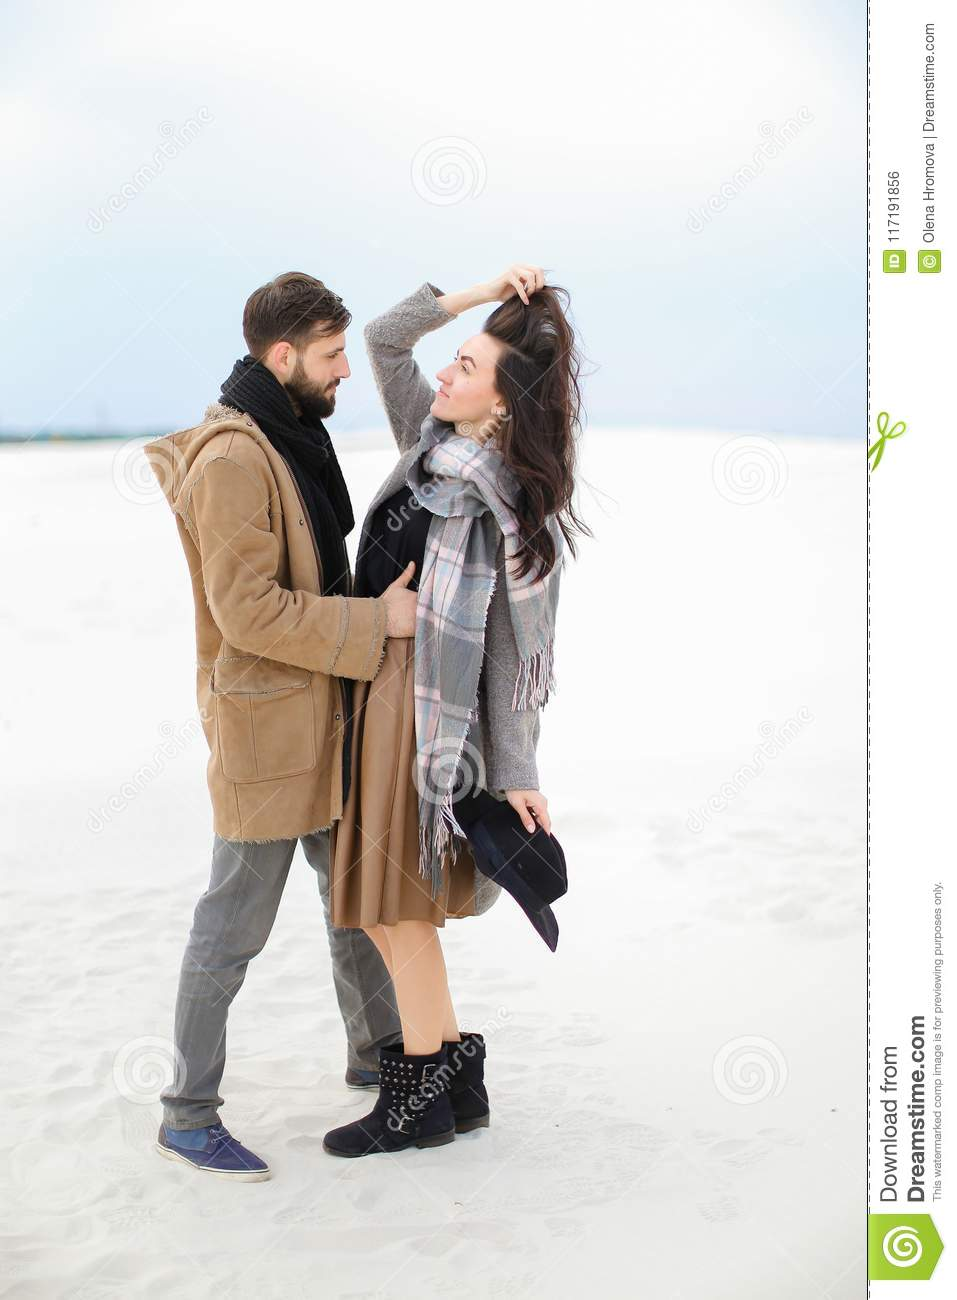 Happy woman wearing grey scarf standing with man in coat, winter white background.